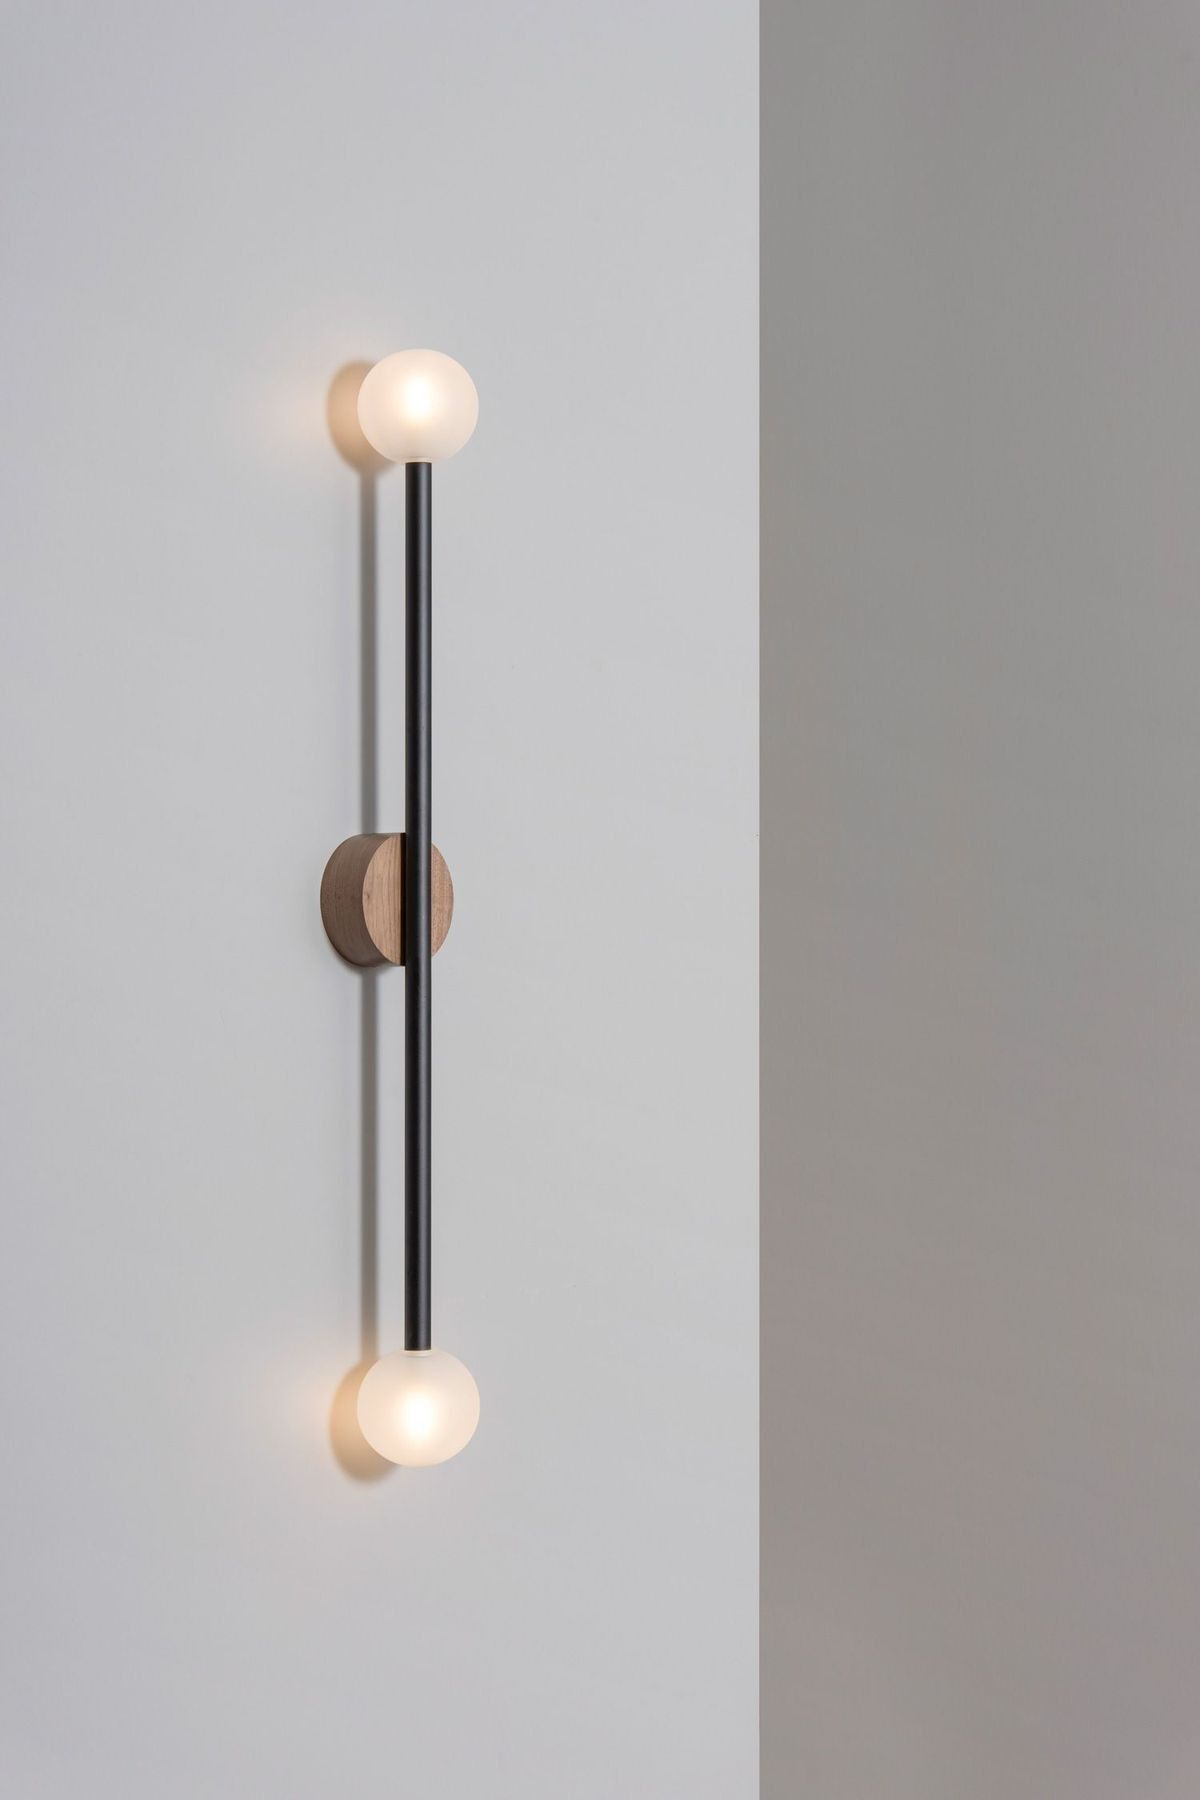 Pin By Isabelle Pierce On Cool Things I Like In 2020 Wall Lamp Lamp Wall Mounted Lamps